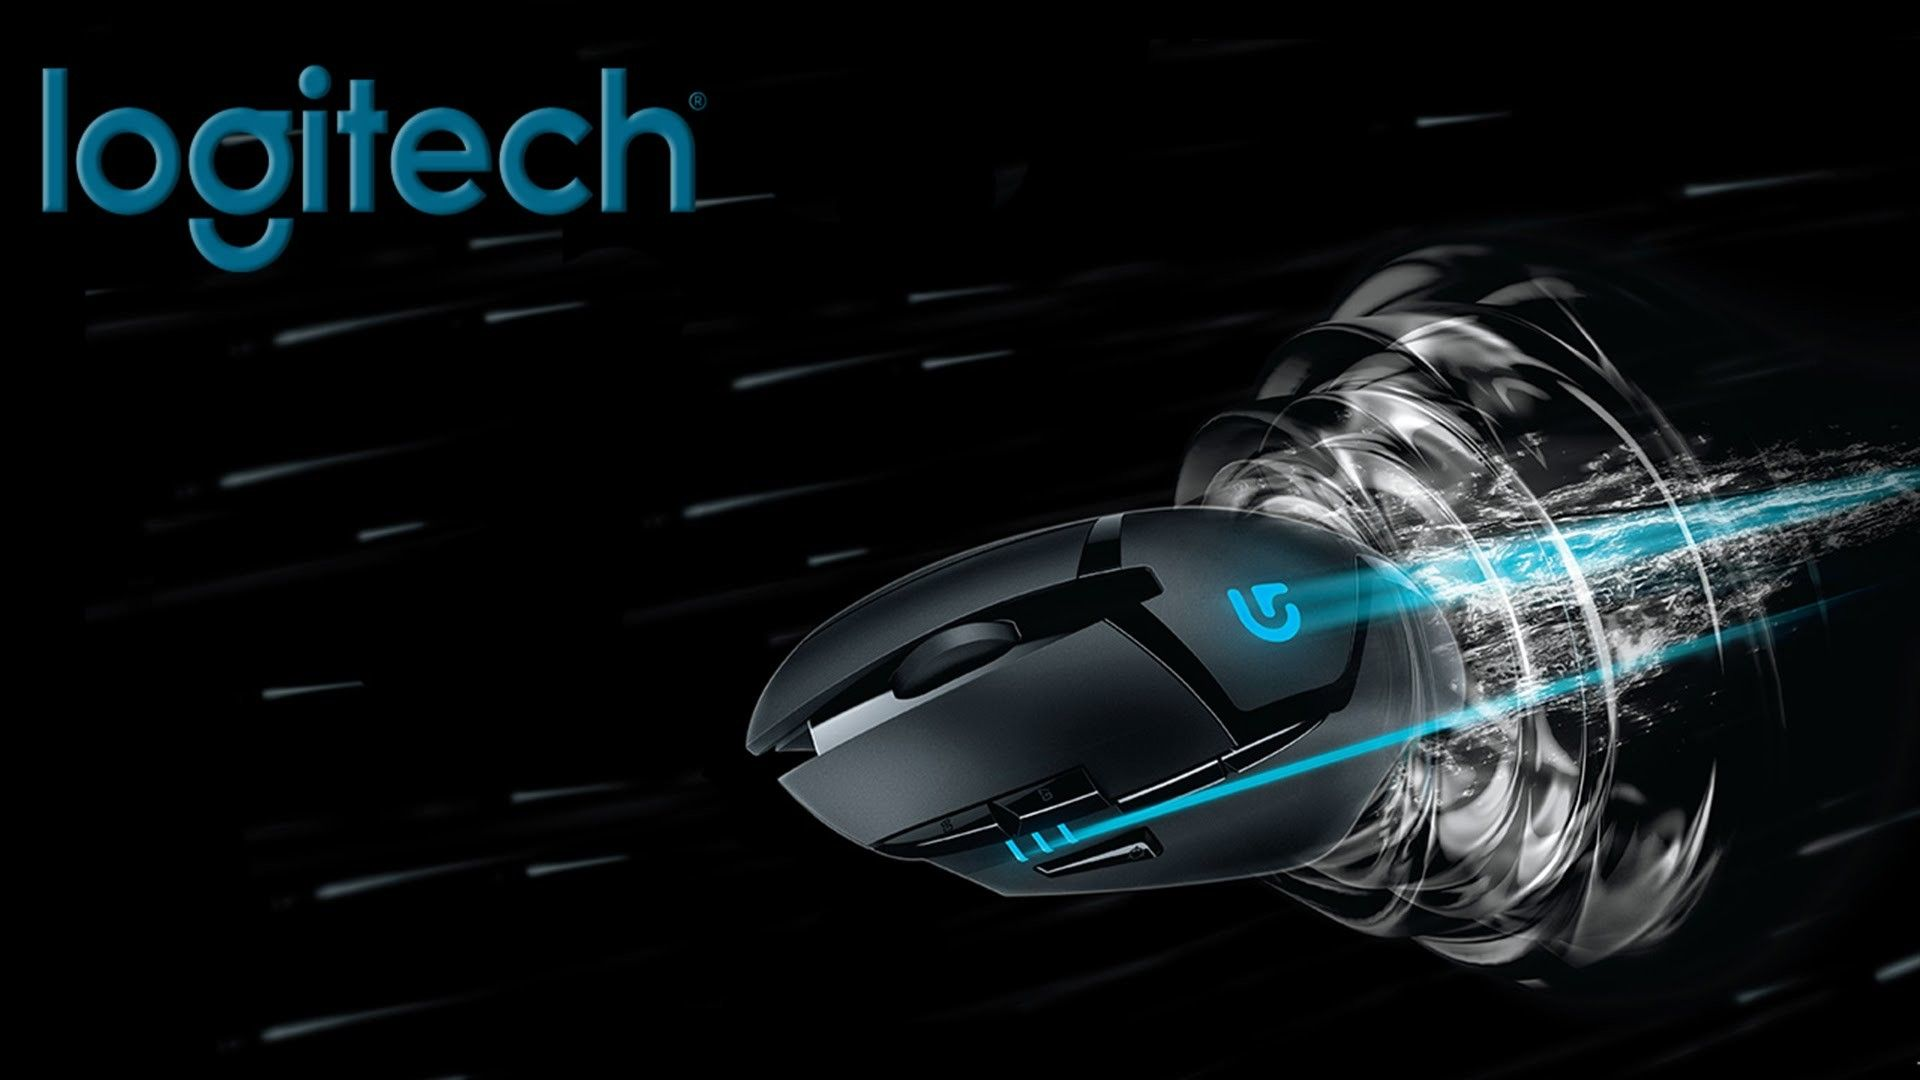 2560x1080 logitech wallpaper